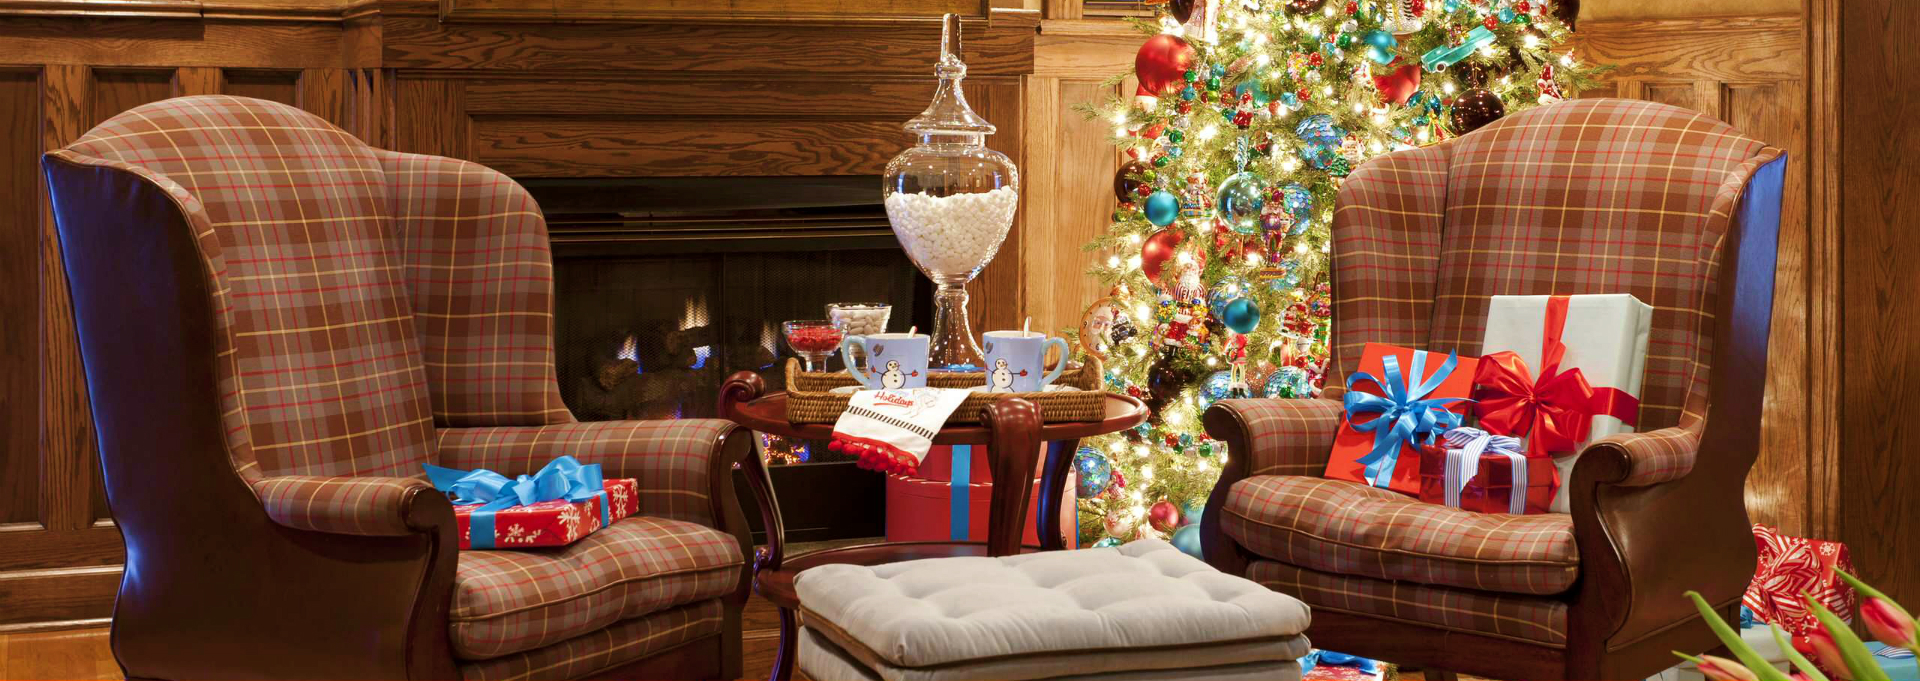 6 Must Read Interior Design Magazines with Best Christmas Tips Ever